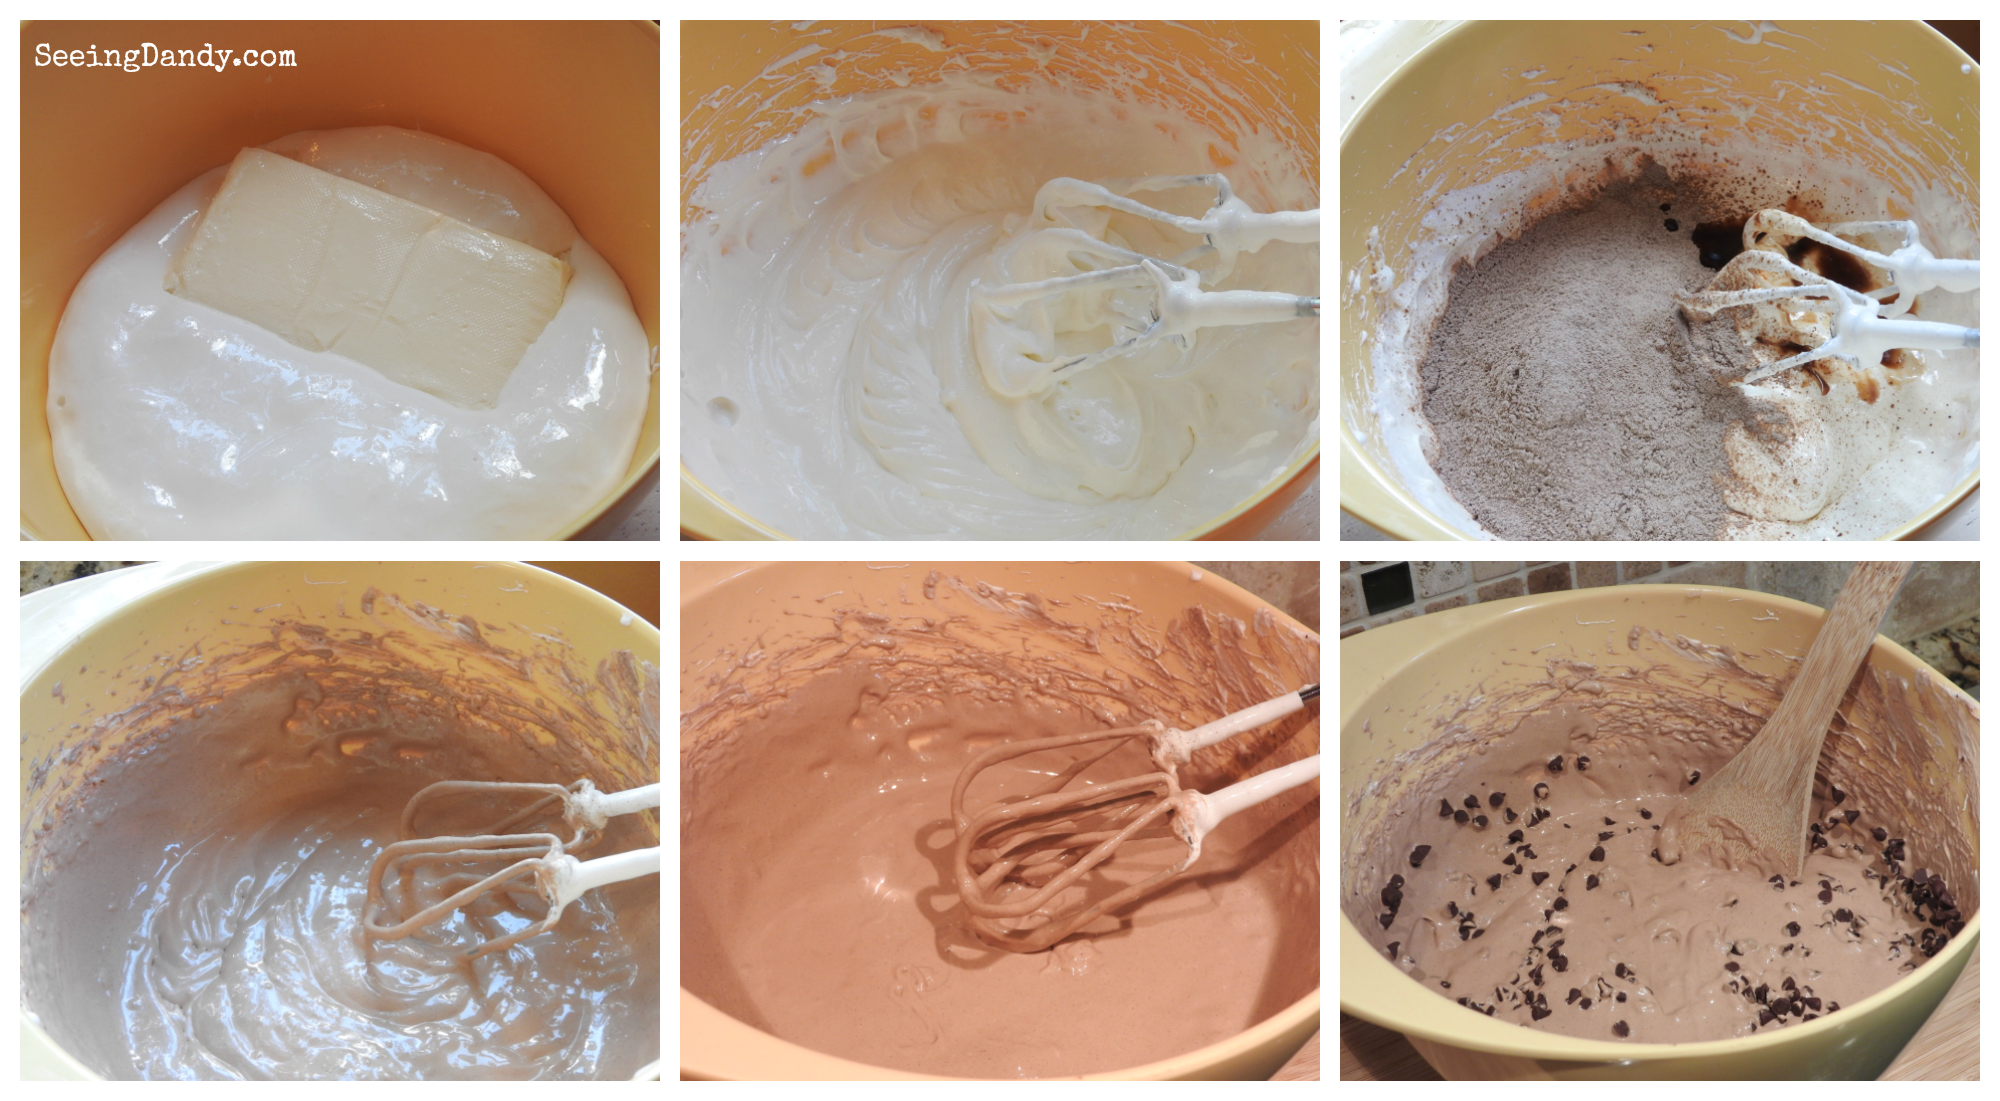 Fluffy Chocolate Fruit Dip steps and directions.